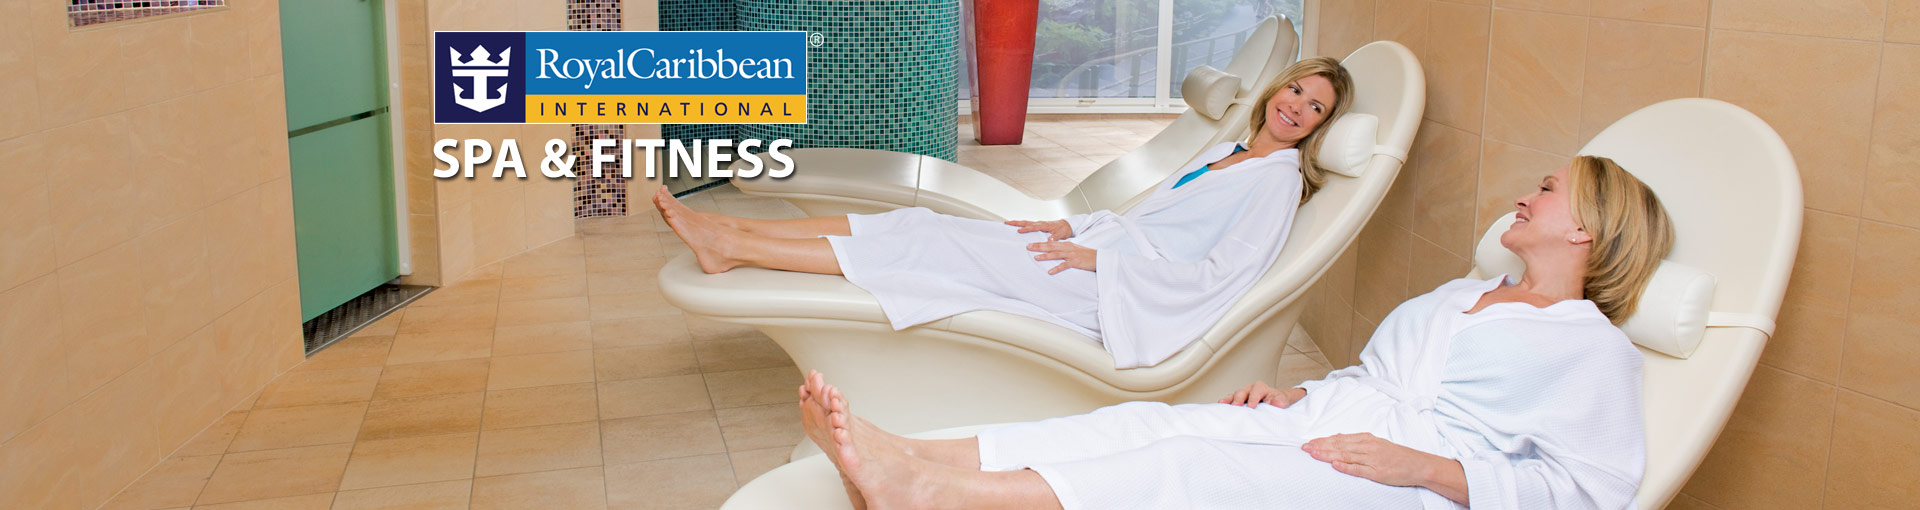 Royal Caribbean Spa & Fitness